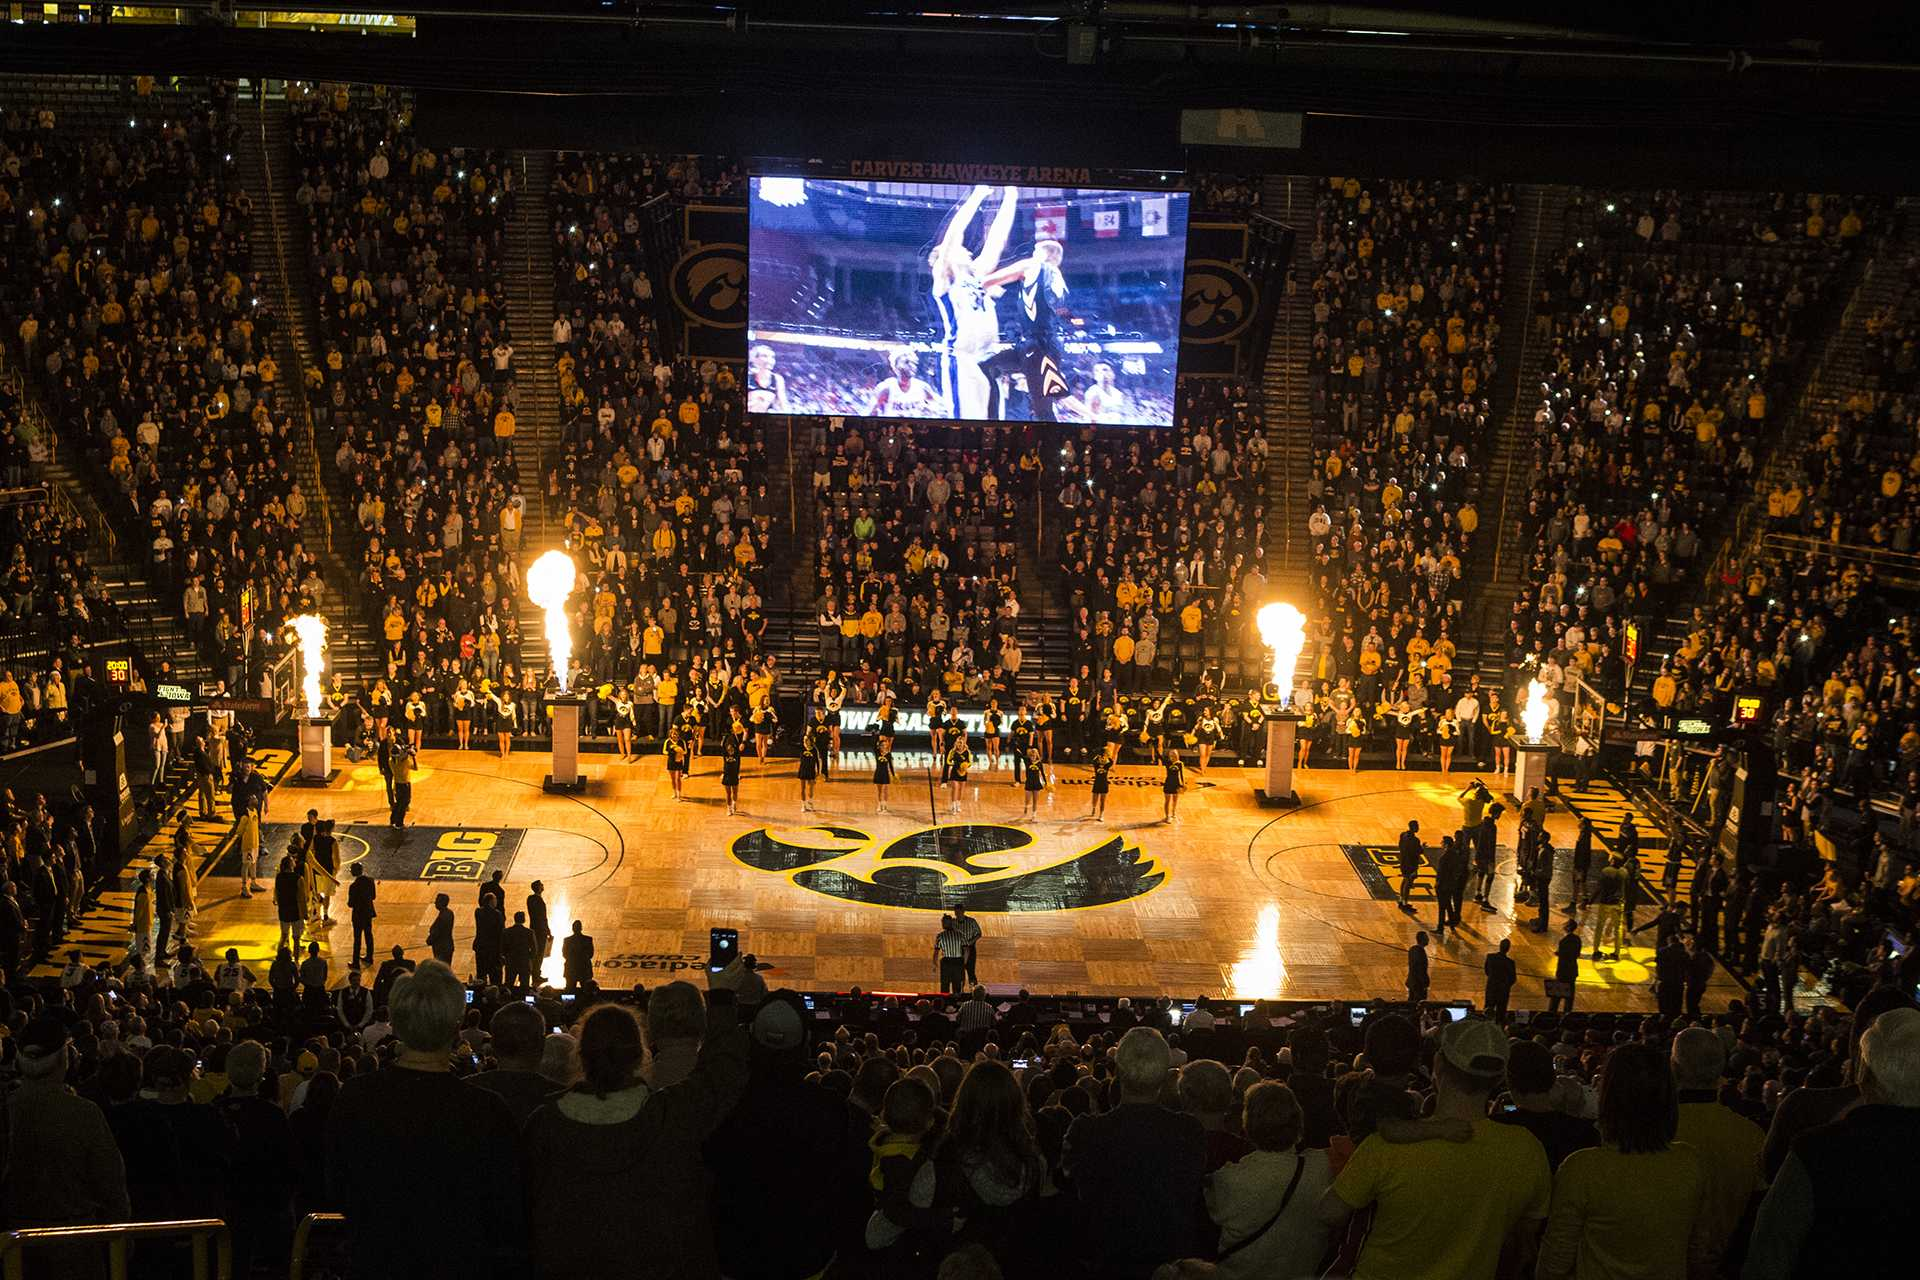 during the Senior Day men's basketball game between Iowa and Northwestern at Carver-Hawkeye Arena on Sunday, Feb. 25, 2018. The Hawkeyes defeated the Wildcats 77-70. (Ben Allan Smith/The Daily Iowan)